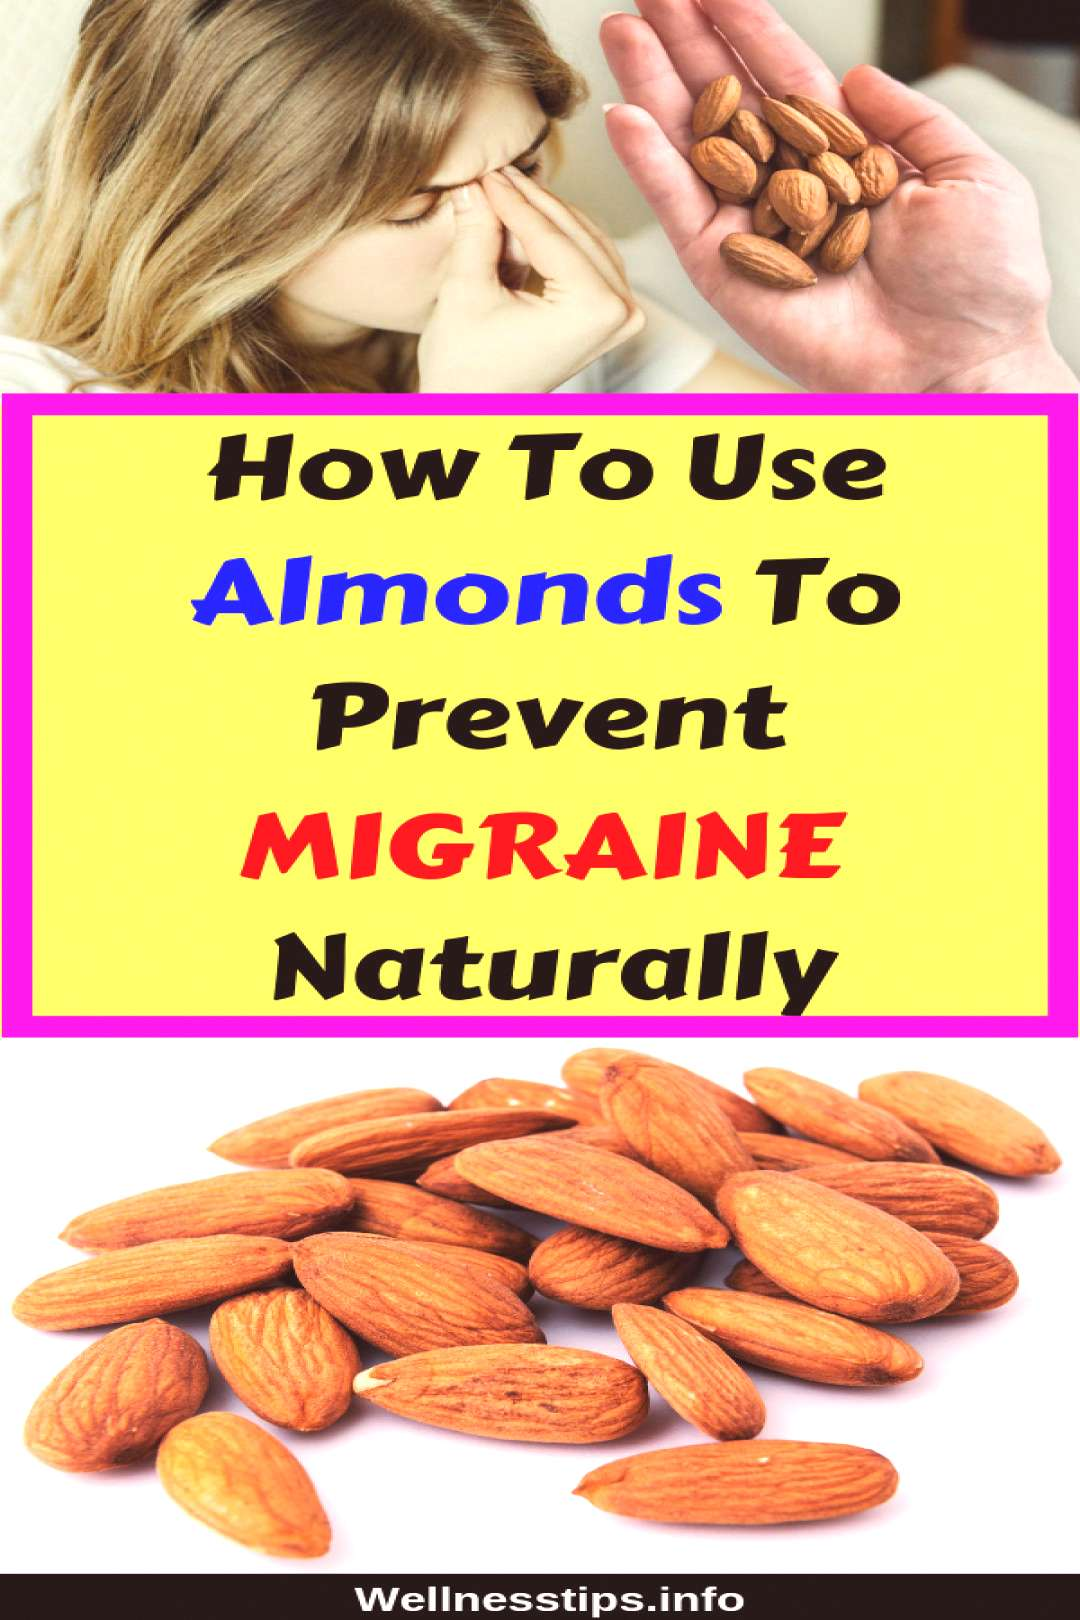 How To Use Almonds To Prevent Migraine Naturally